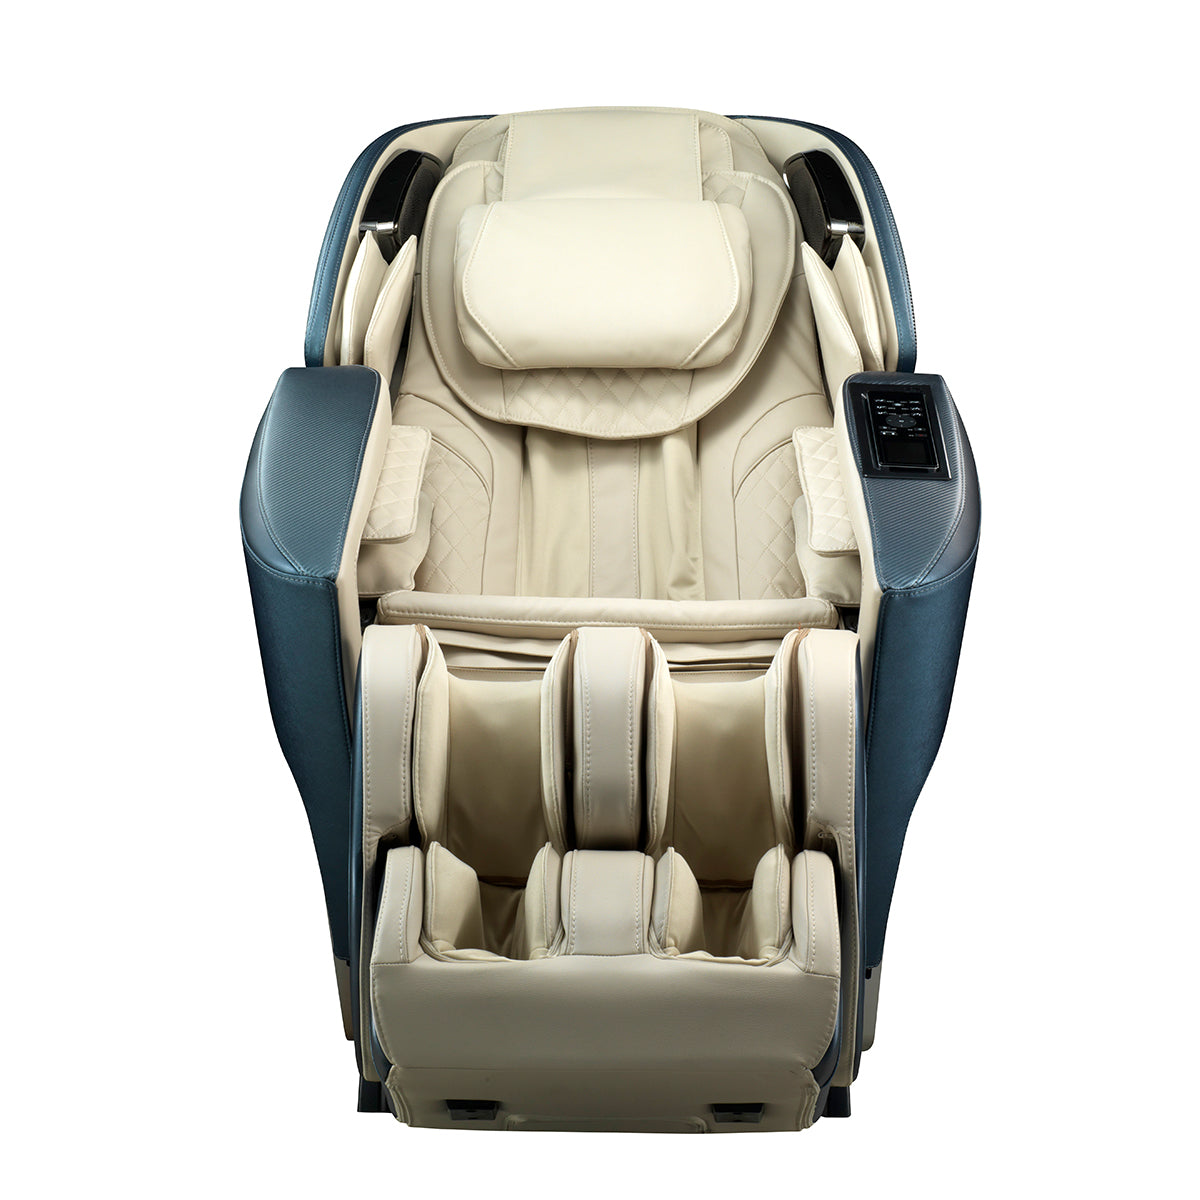 bodycare luxury massage chair BC7600 Cream color ROTAI